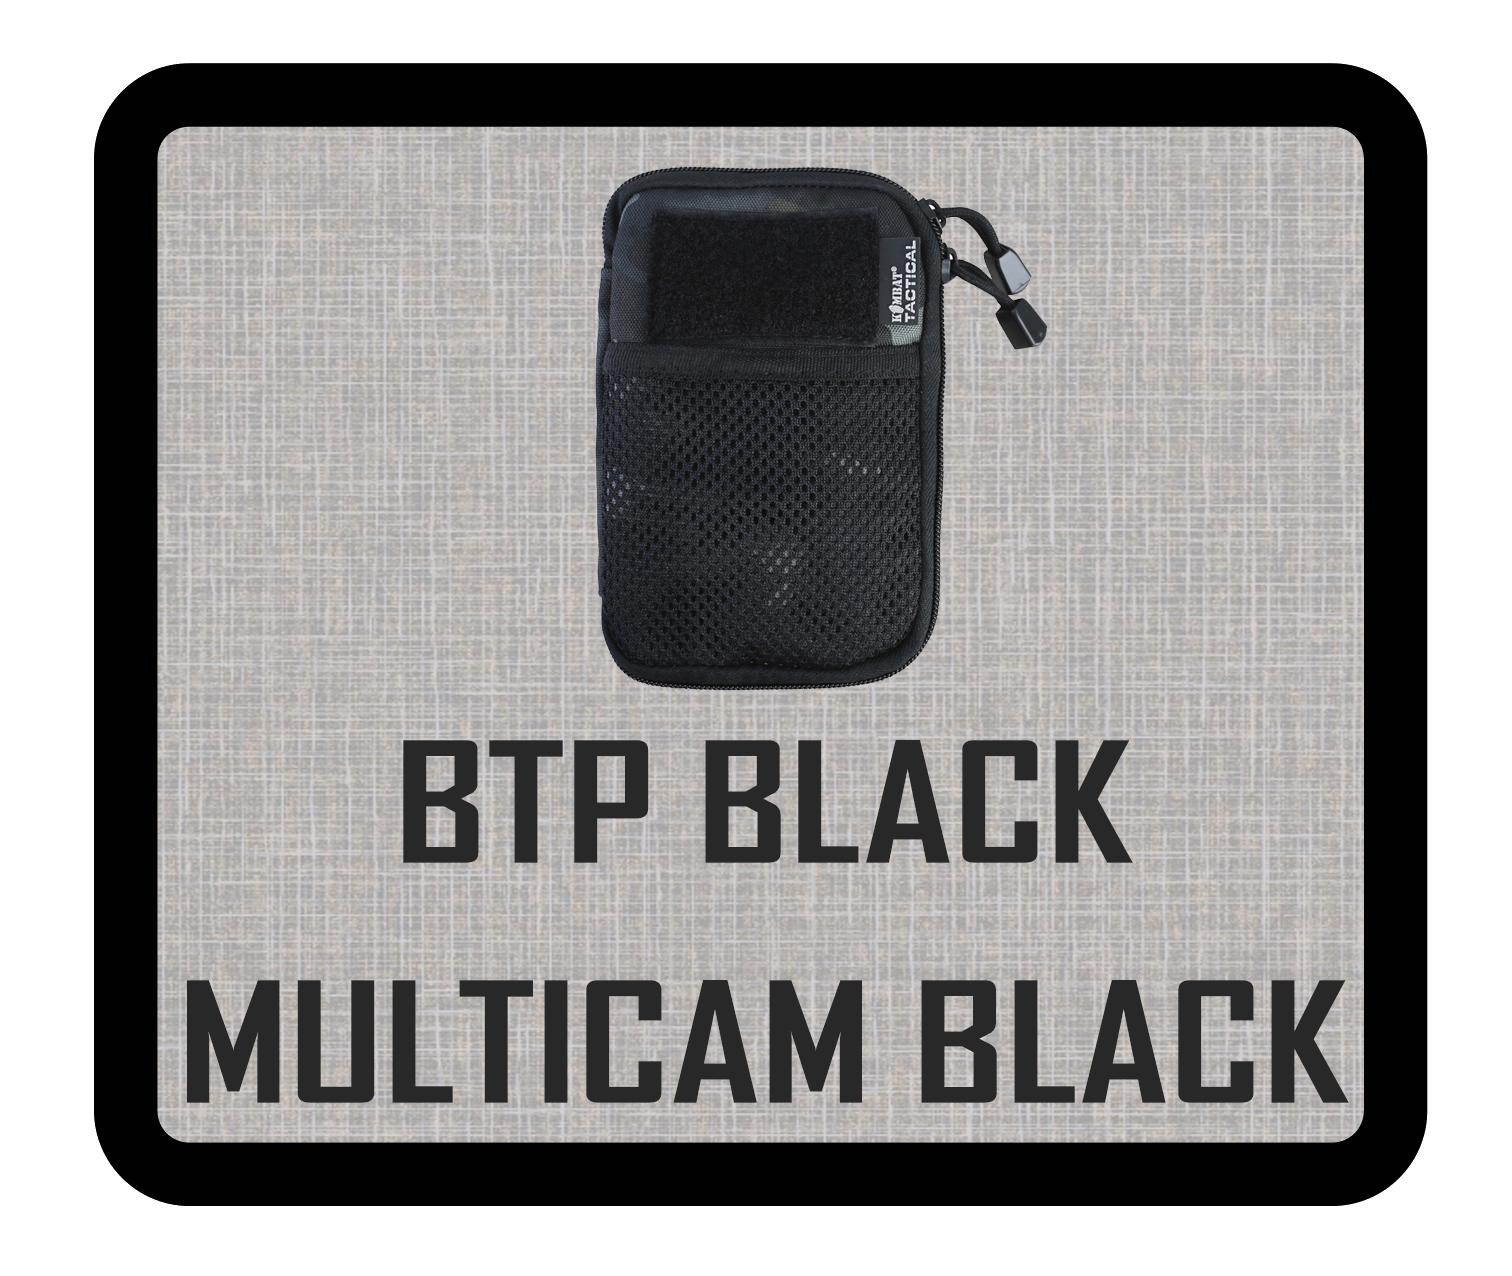 BTP BLACK / MULTICAM BLACK